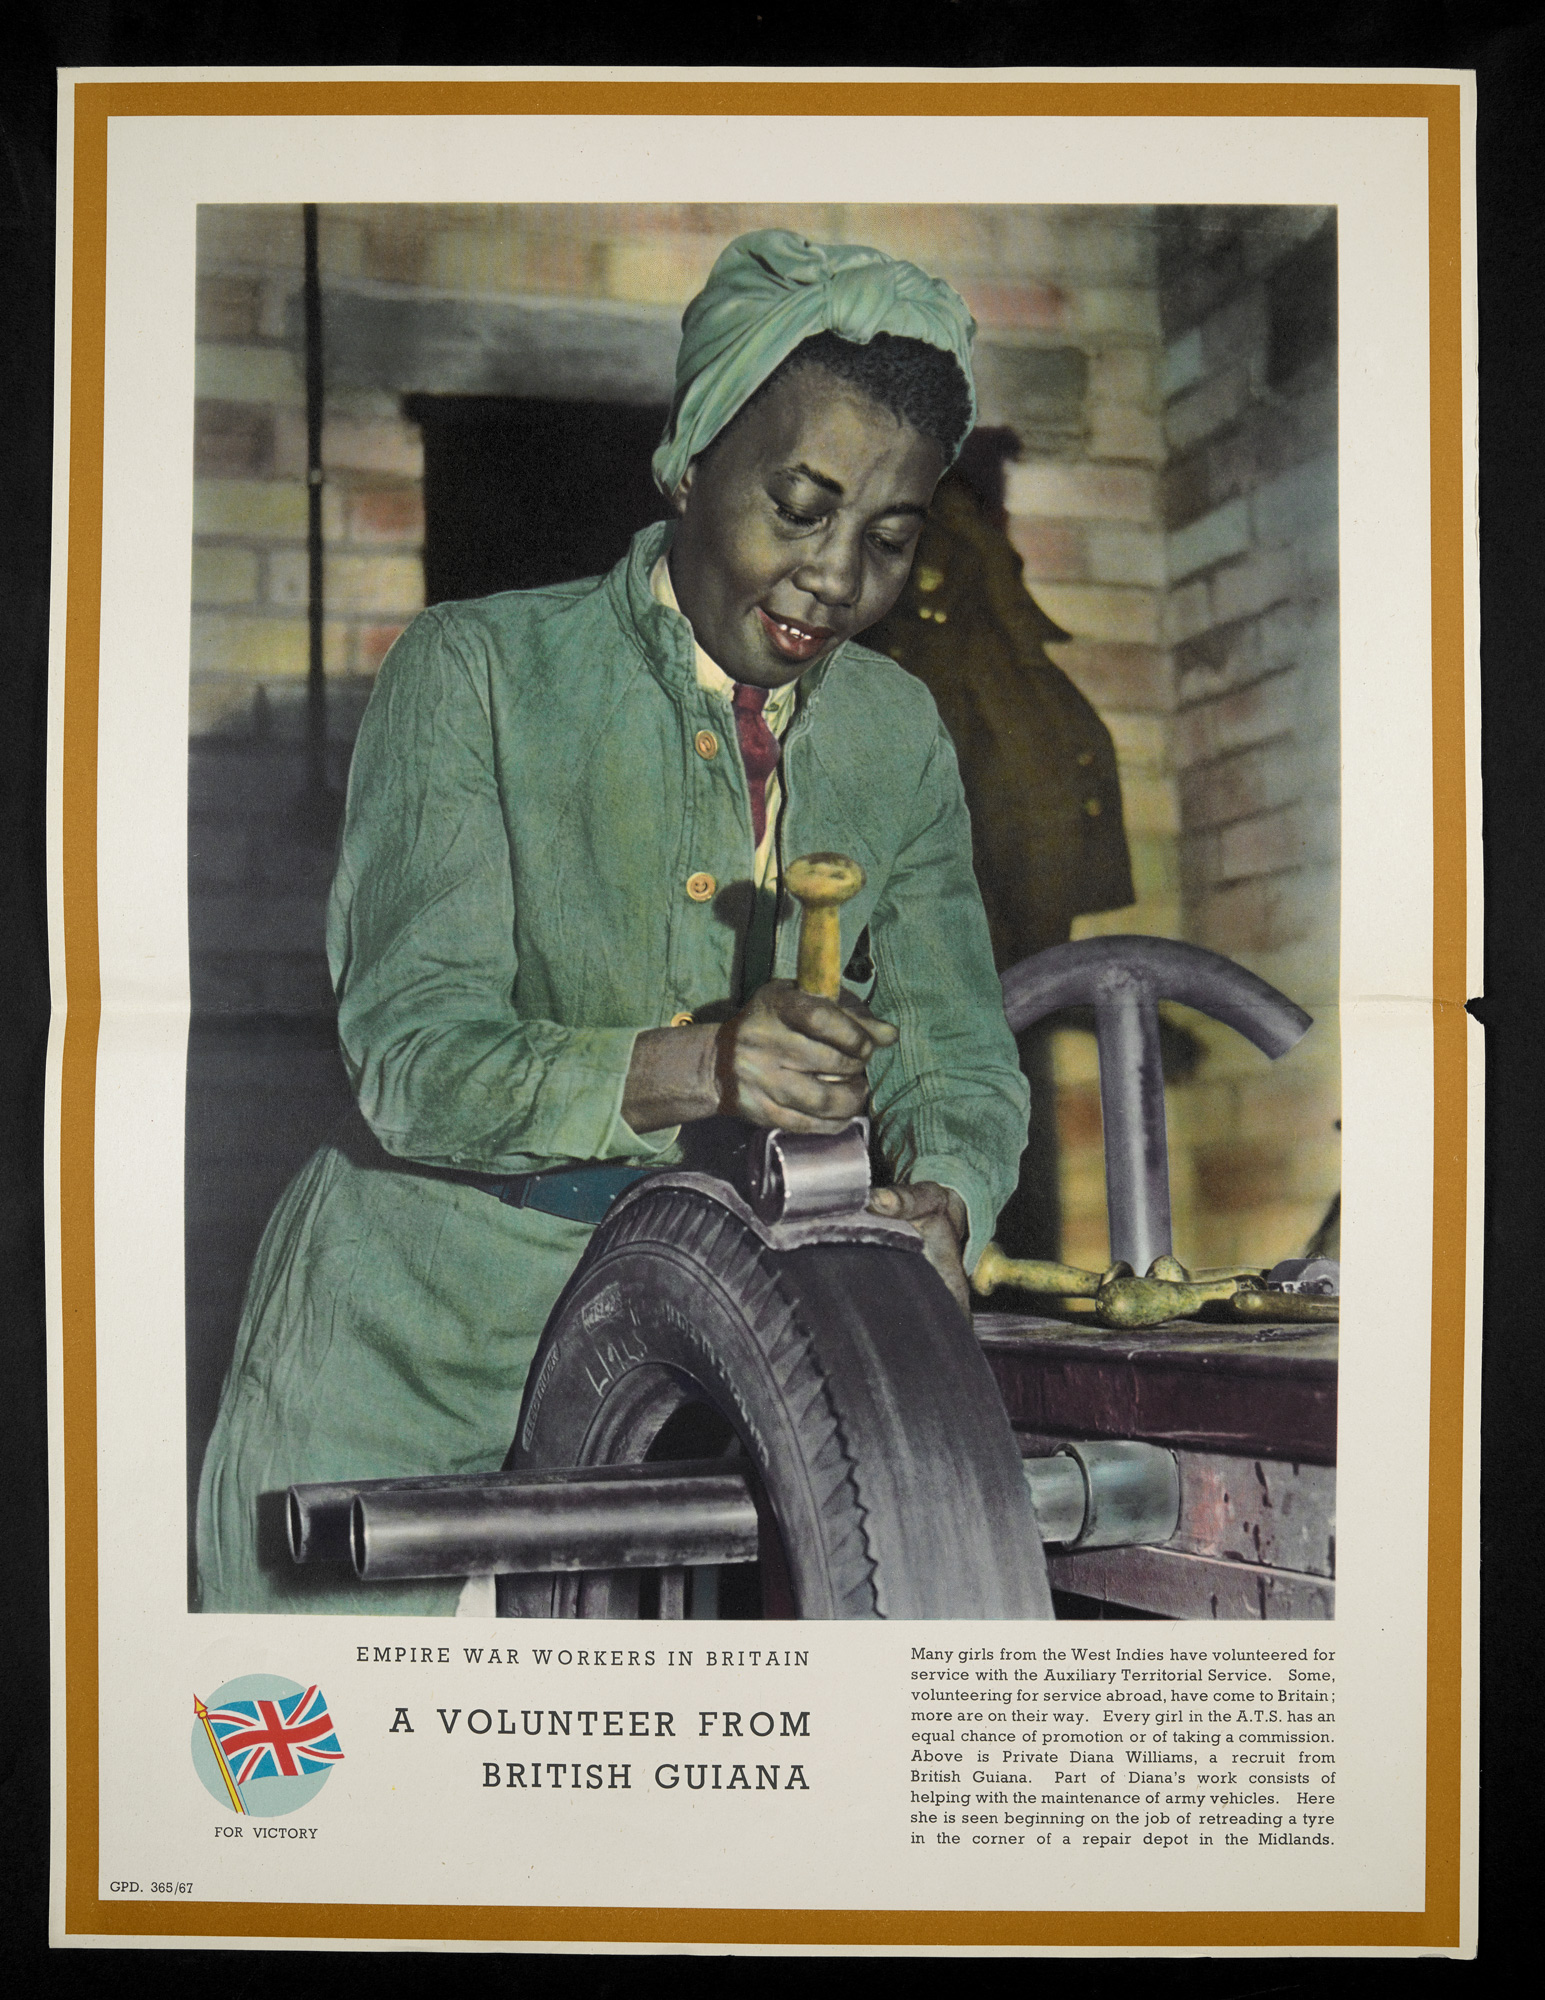 World War Two poster titled 'A volunteer from British Guiana', featuring a photograph of Private Diana Williams retreading a tyre at a repair depot